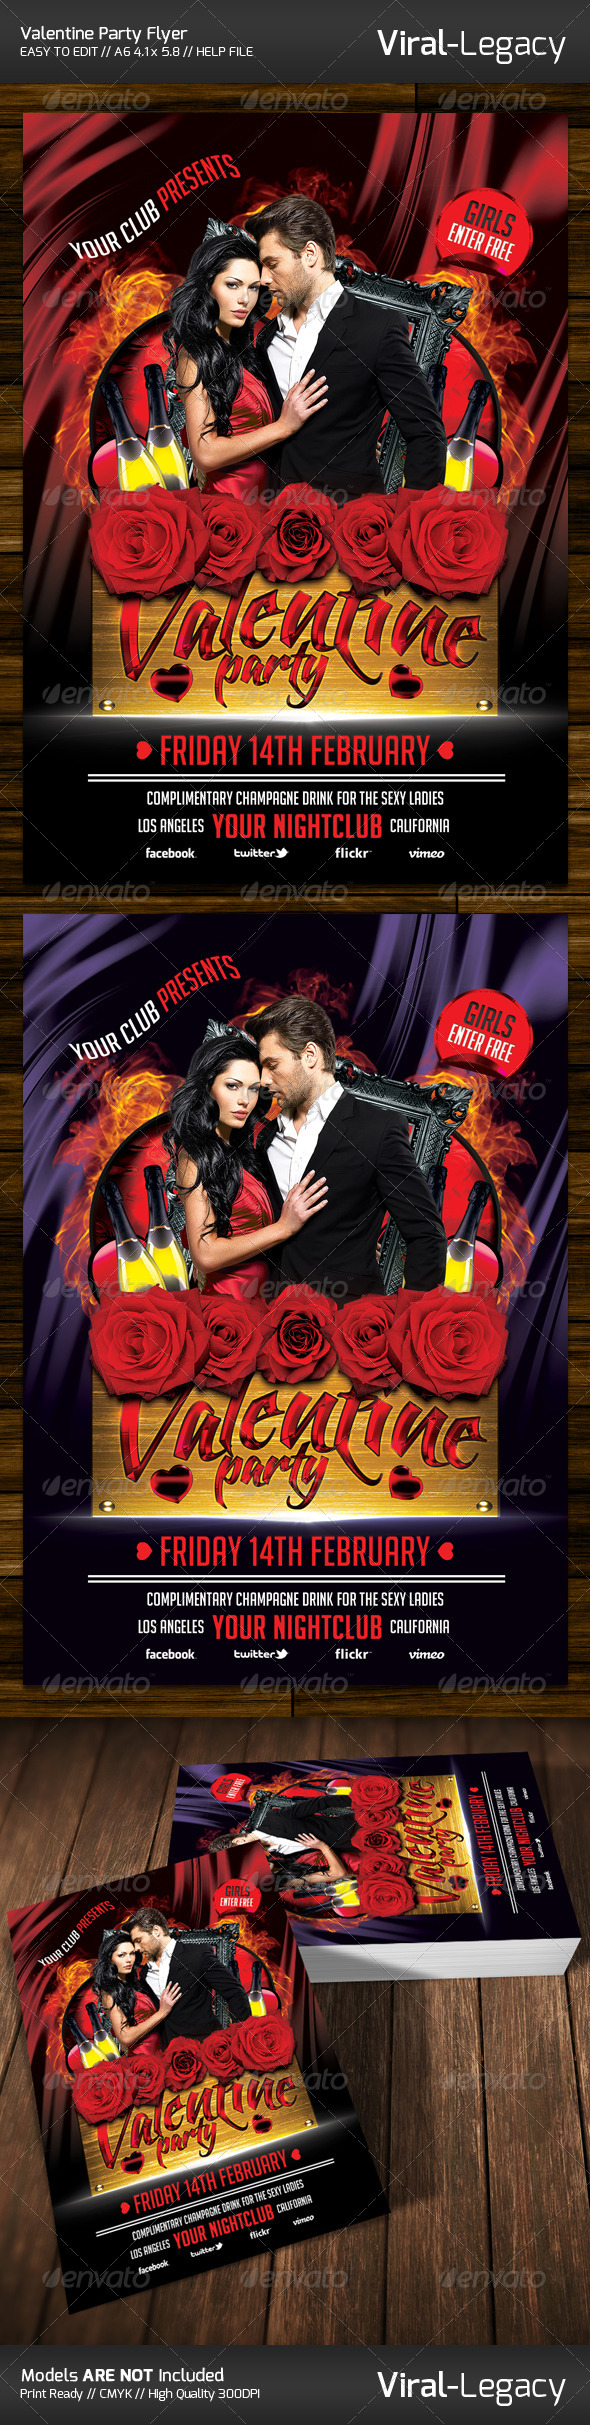 Valentine Party Flyer - Flyers Print Templates